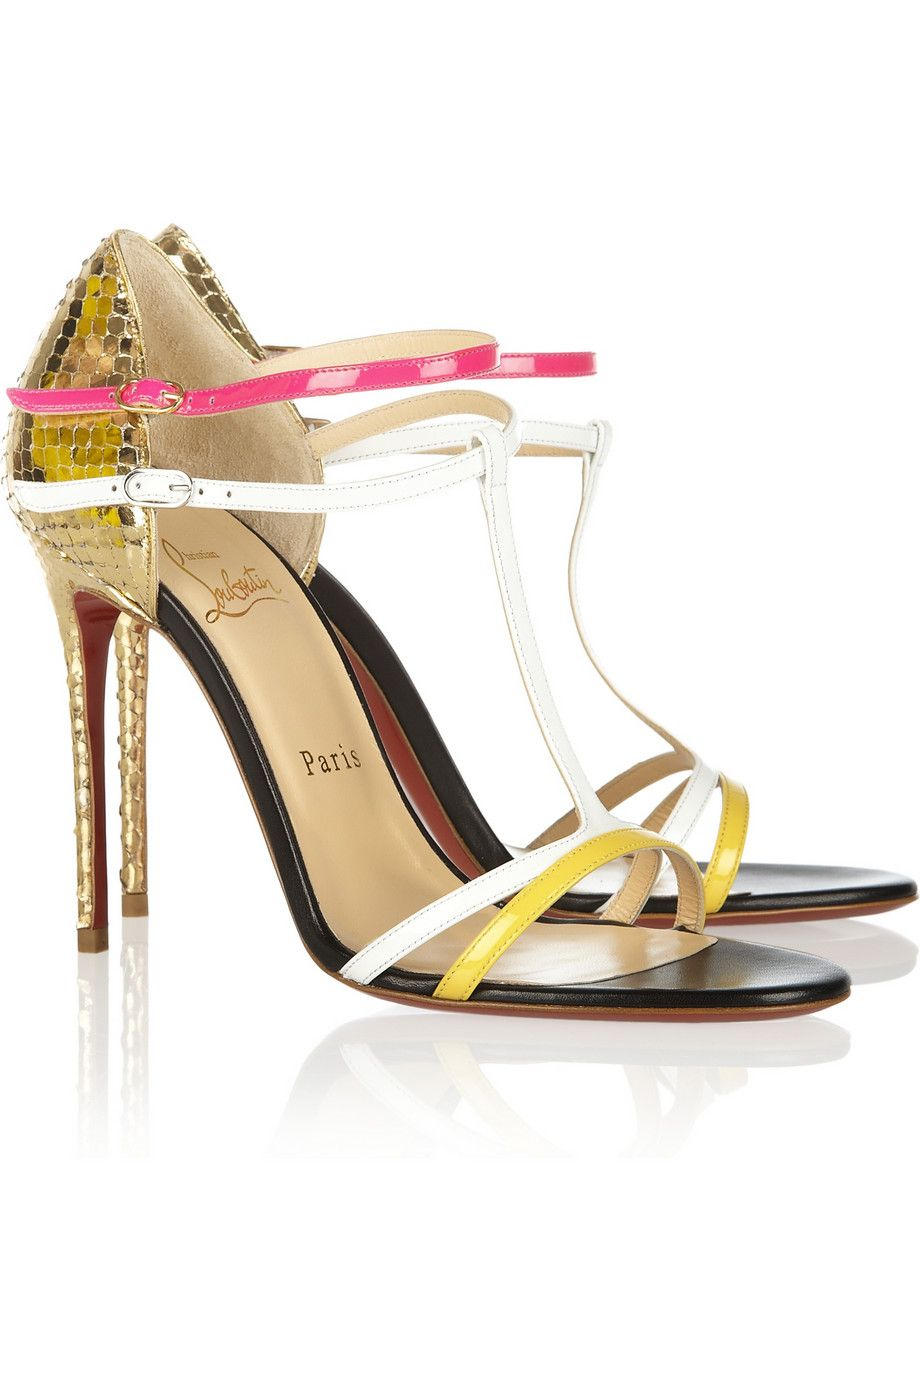 5c284943e3eb Christian Louboutin Arnold 100 patent-leather and mirrored-python sandals -  ShopStyle